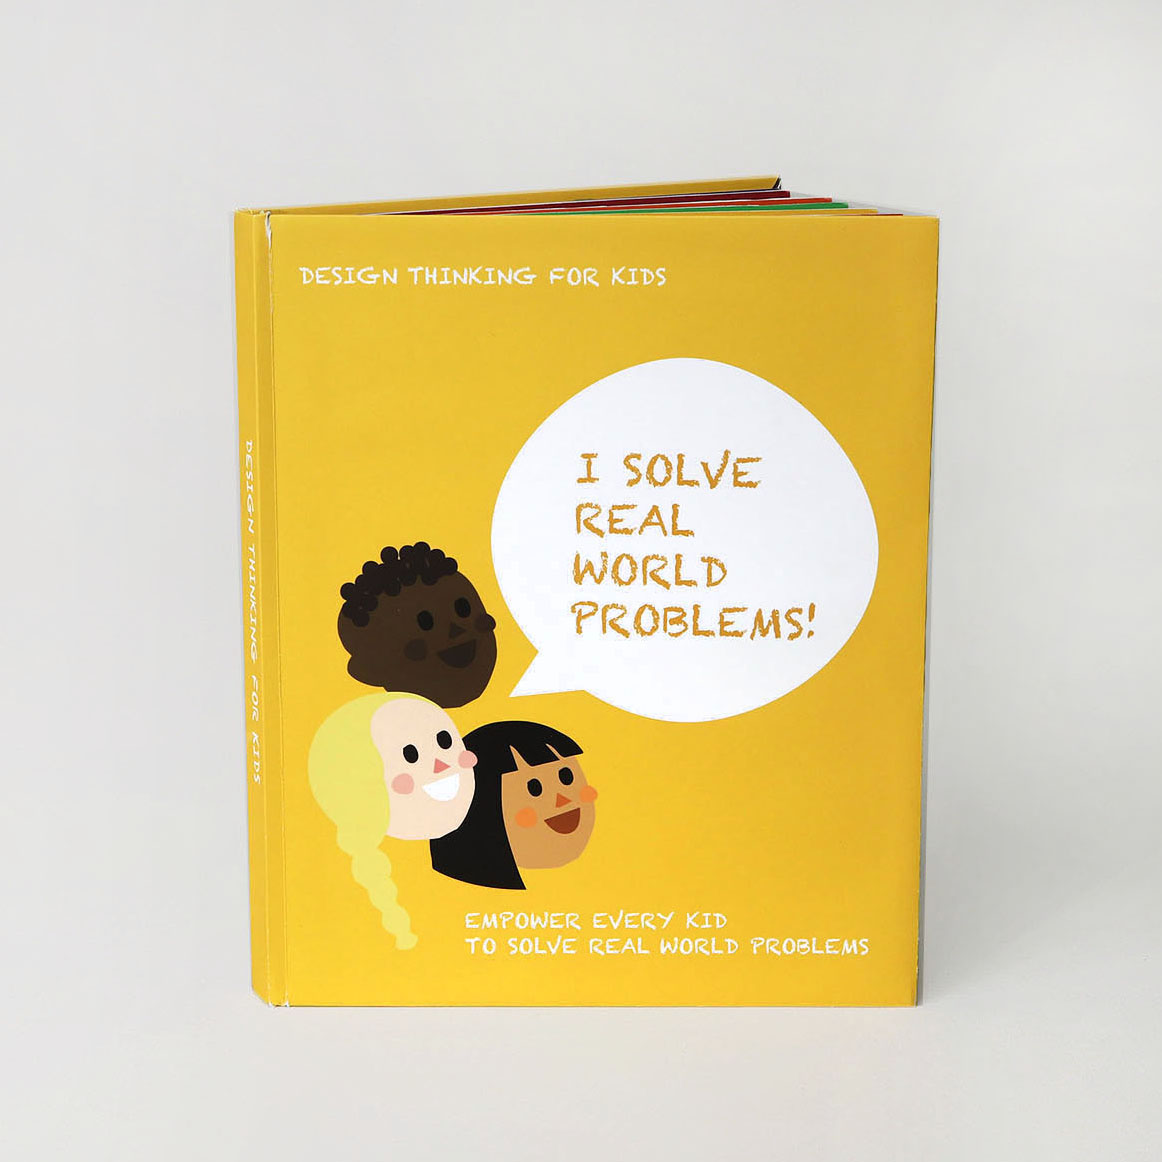 Empowering Kids to Solve Problems - Tangible Interaction Design